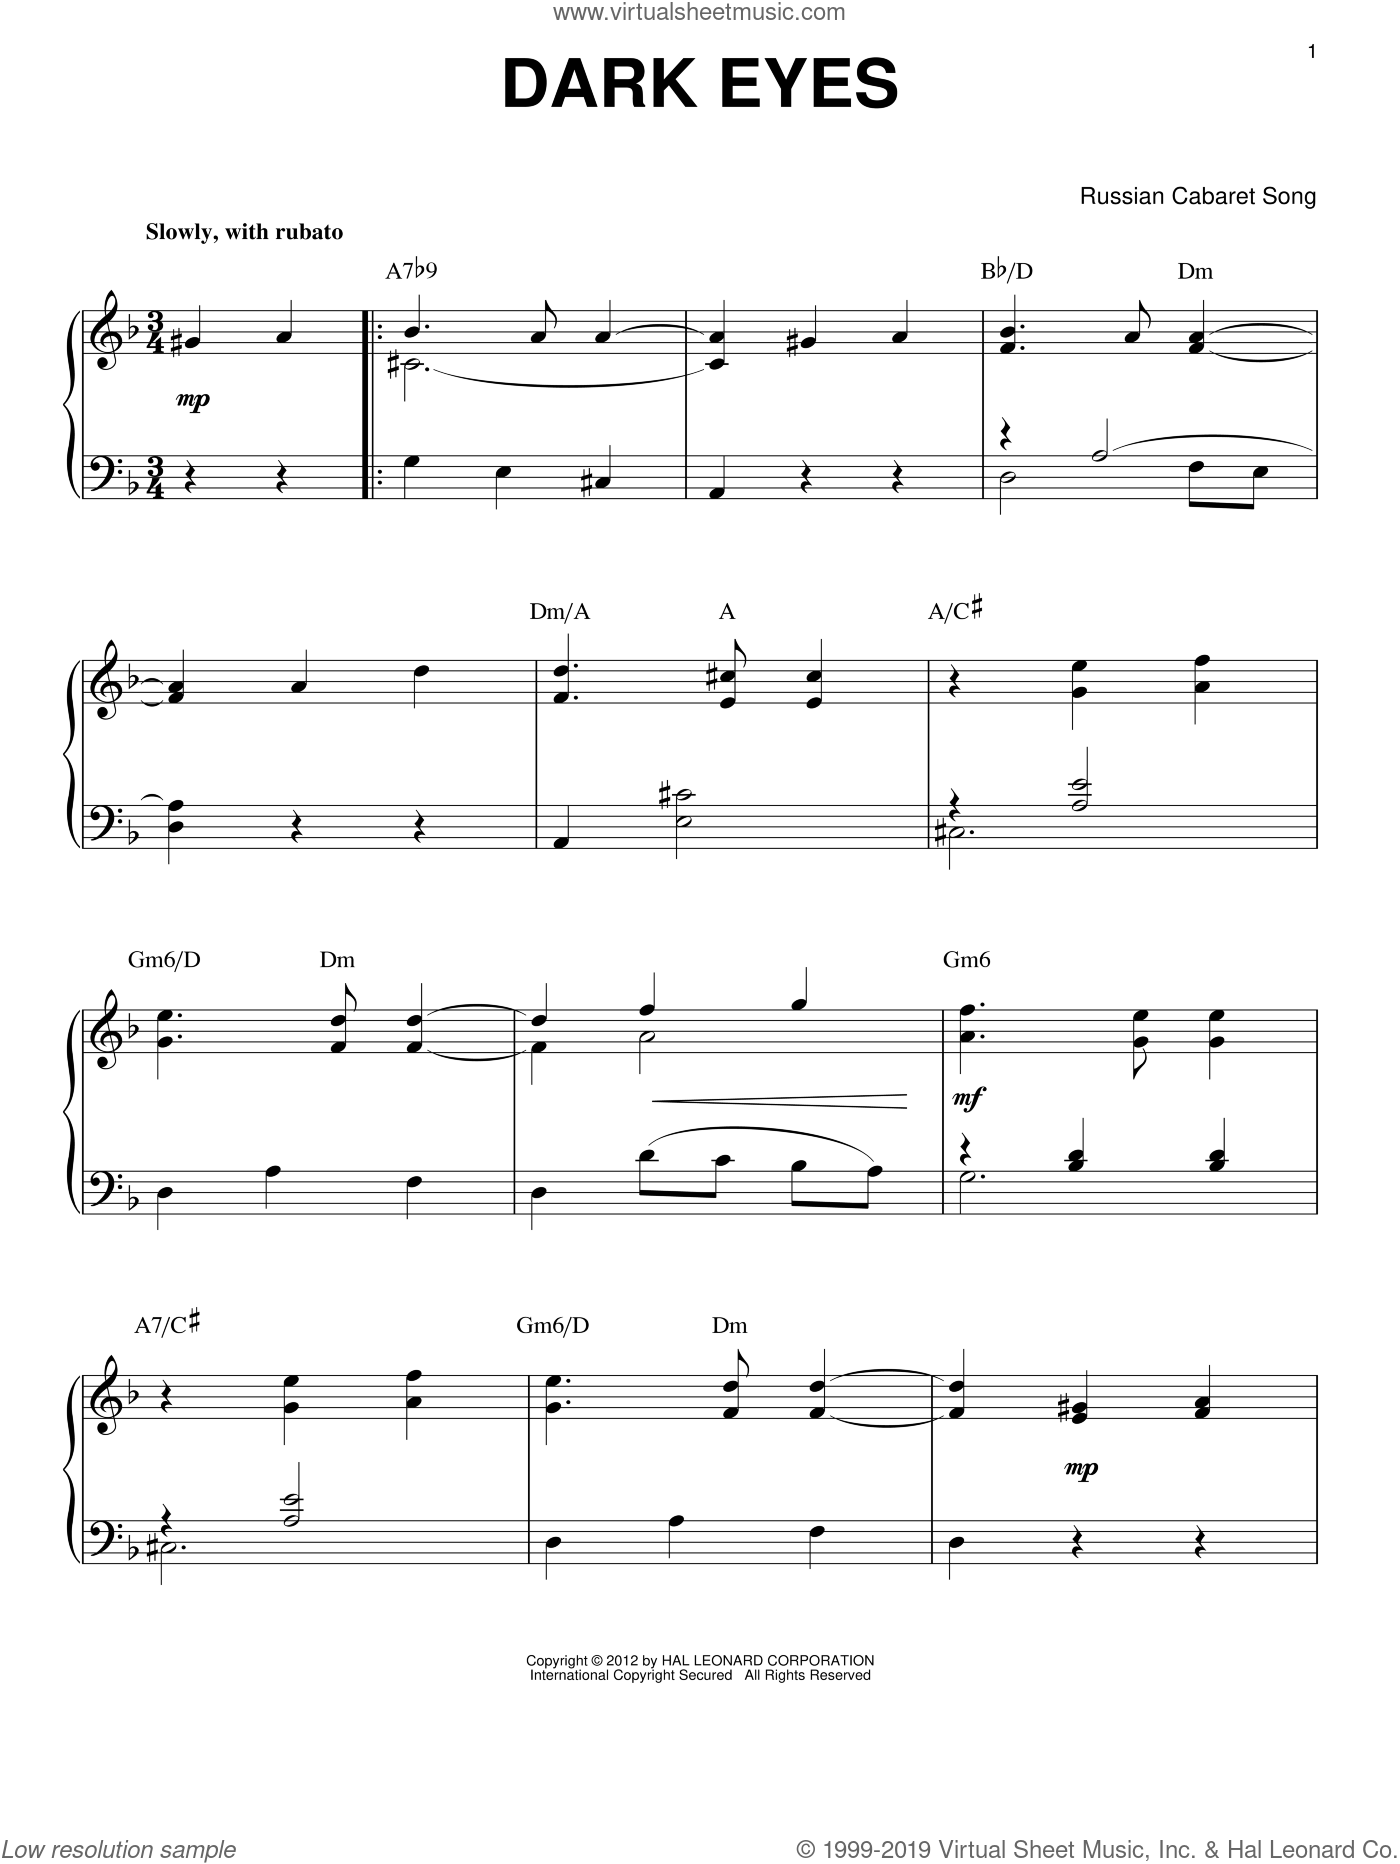 Dark Eyes sheet music for piano solo by Django Reinhardt and Miscellaneous, intermediate